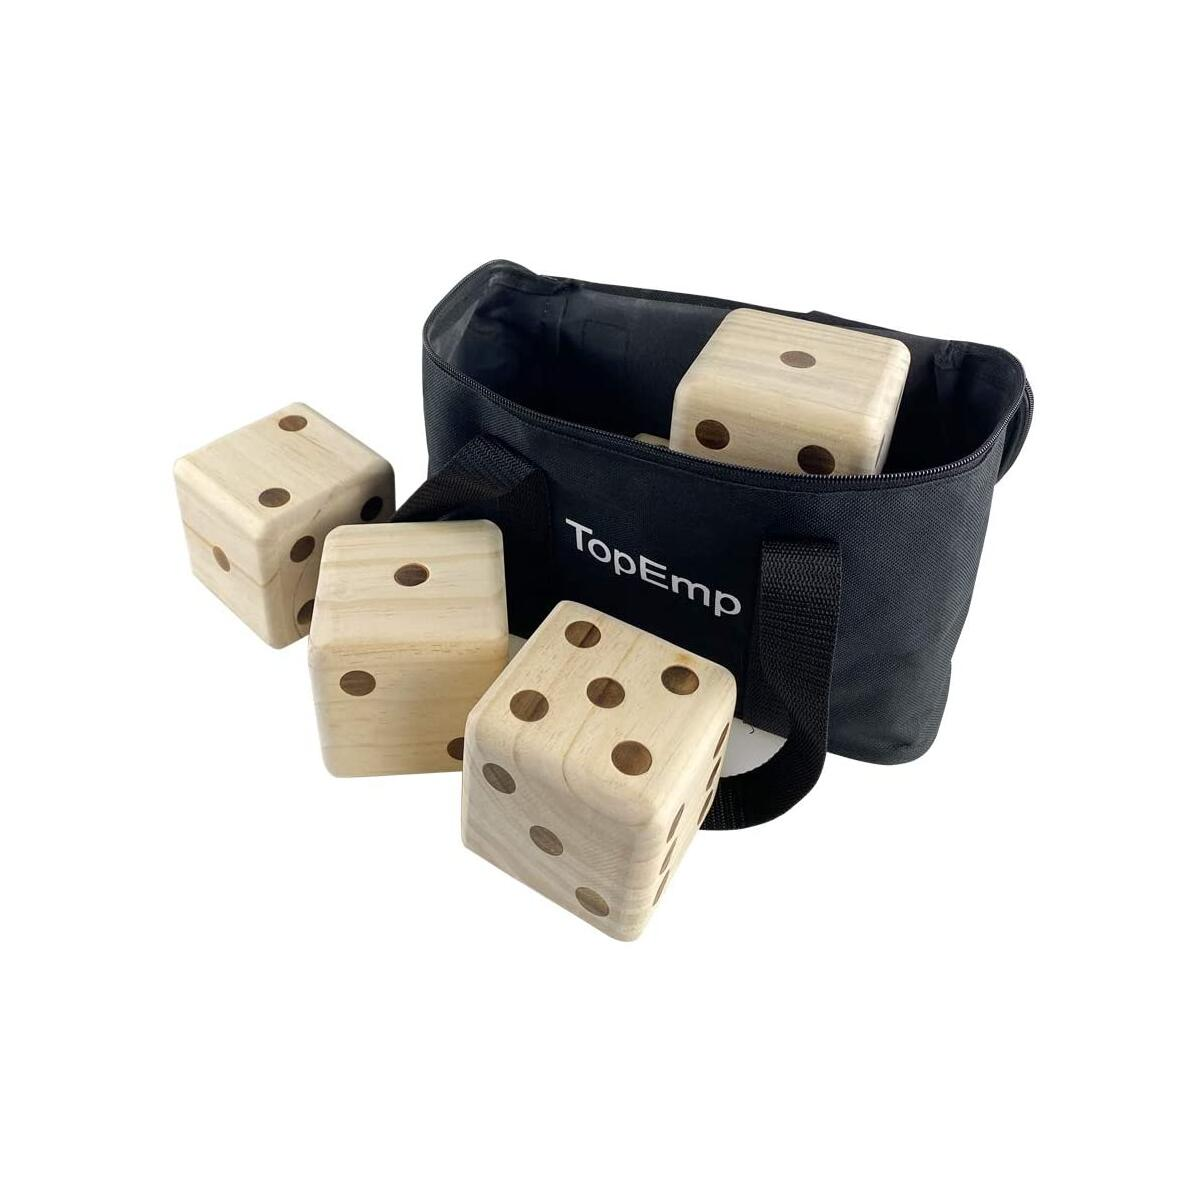 Giant Wooden Yard Dice Games Set , Fun Family Playing Yard Game for Adult with Carrying Canvas Bag